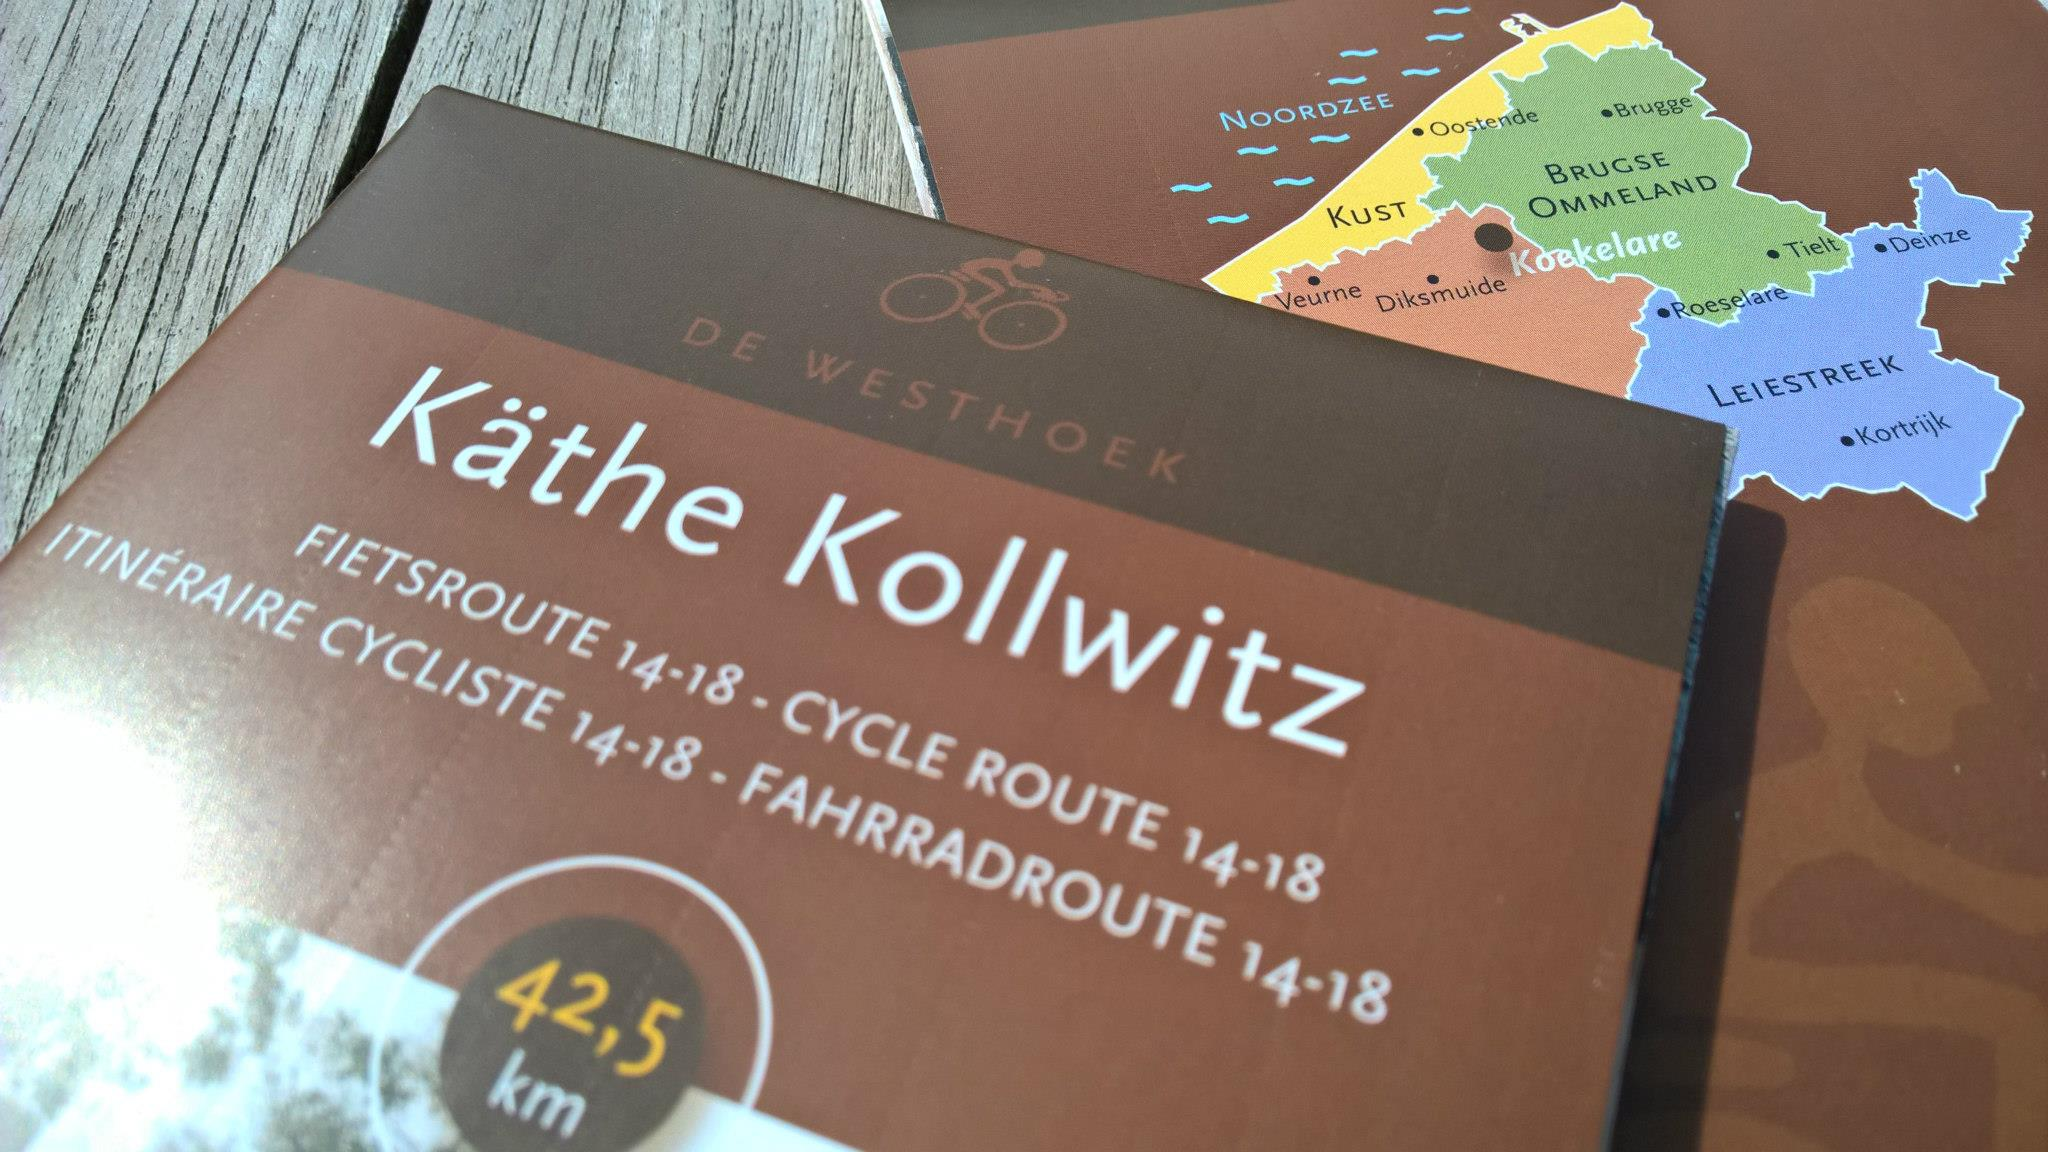 Käthe Kollwitz - Cycling route 14-18